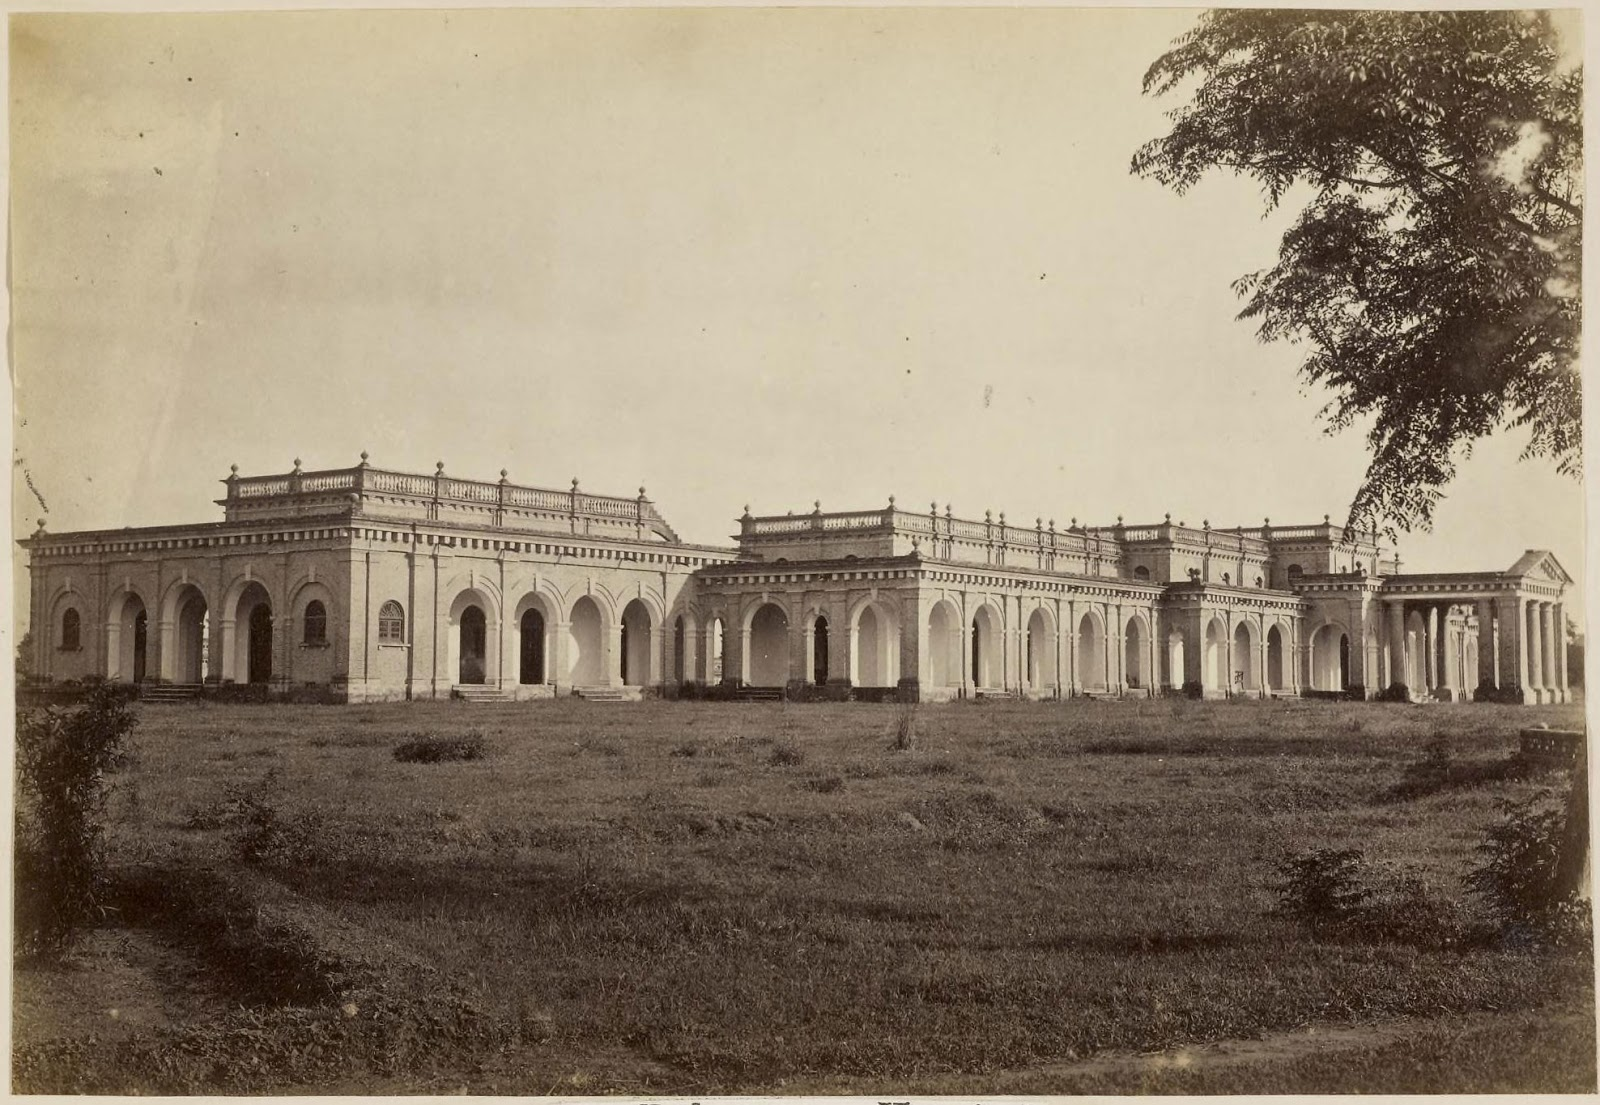 Bulrampore hospital lucknow c1870 39 s old indian photos for Architecture design for home in lucknow